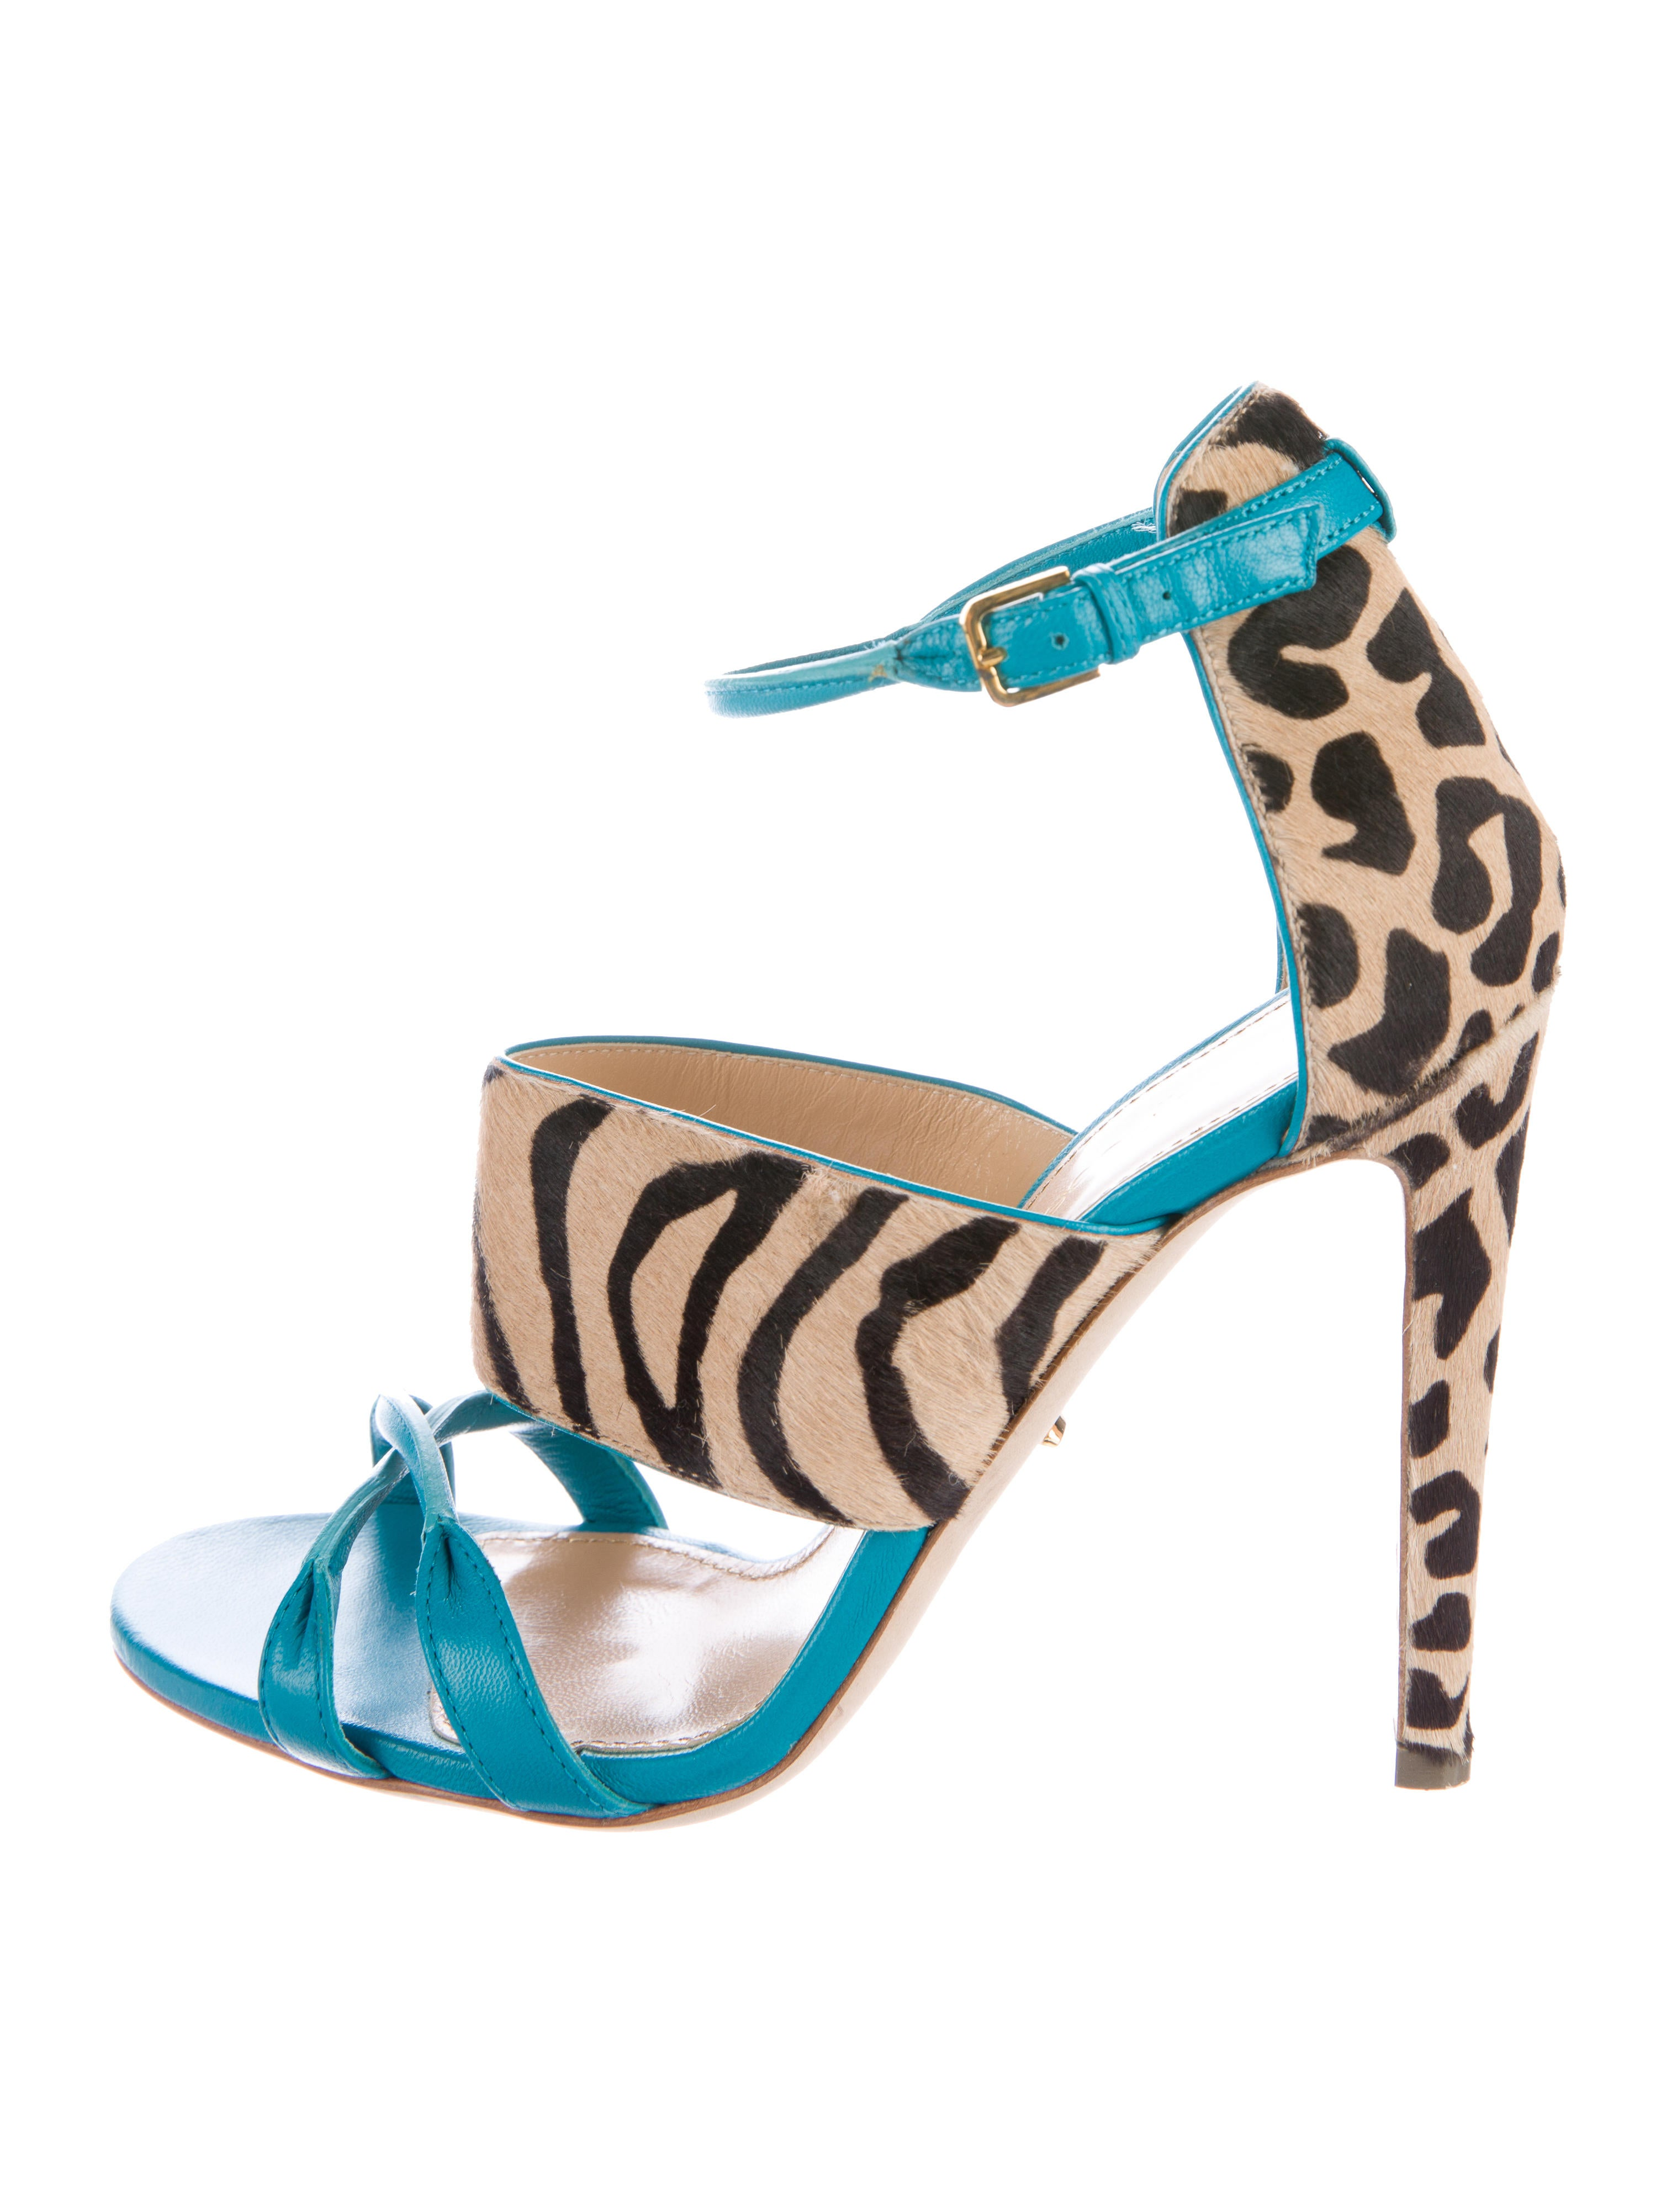 Sergio Rossi Donyale Ankle-Strap Sandals clearance store outlet explore supply for sale YORXmpoS